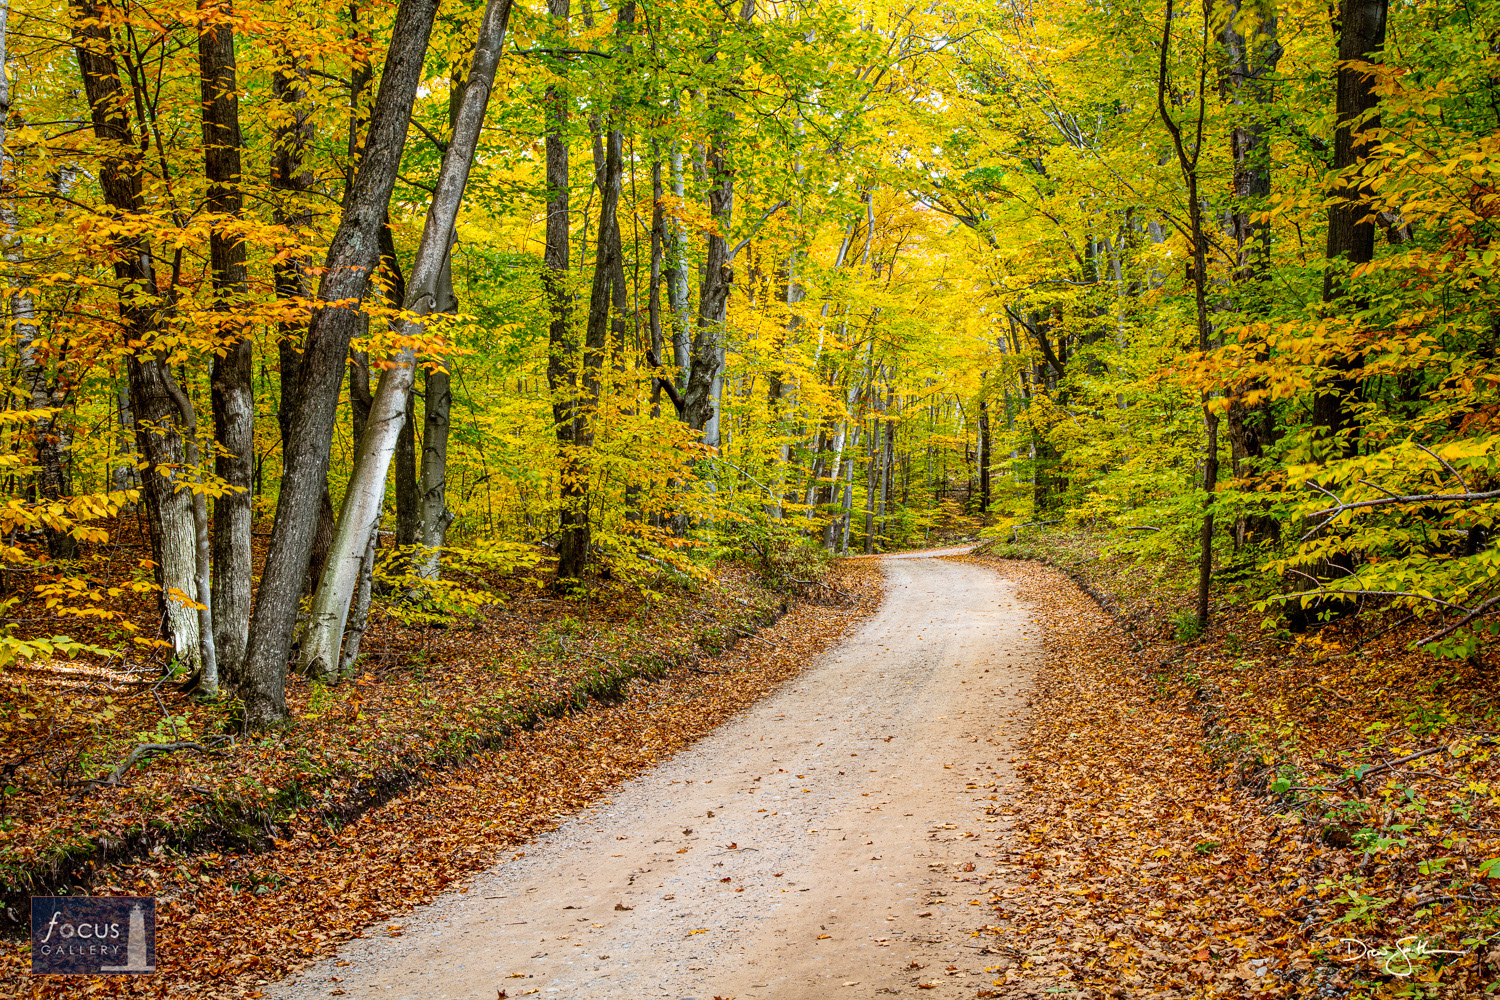 Photo © Drew Smith Color tunnel along one of many scenic backcountry roads through the Sleeping Bear Dunes National Lakeshore...